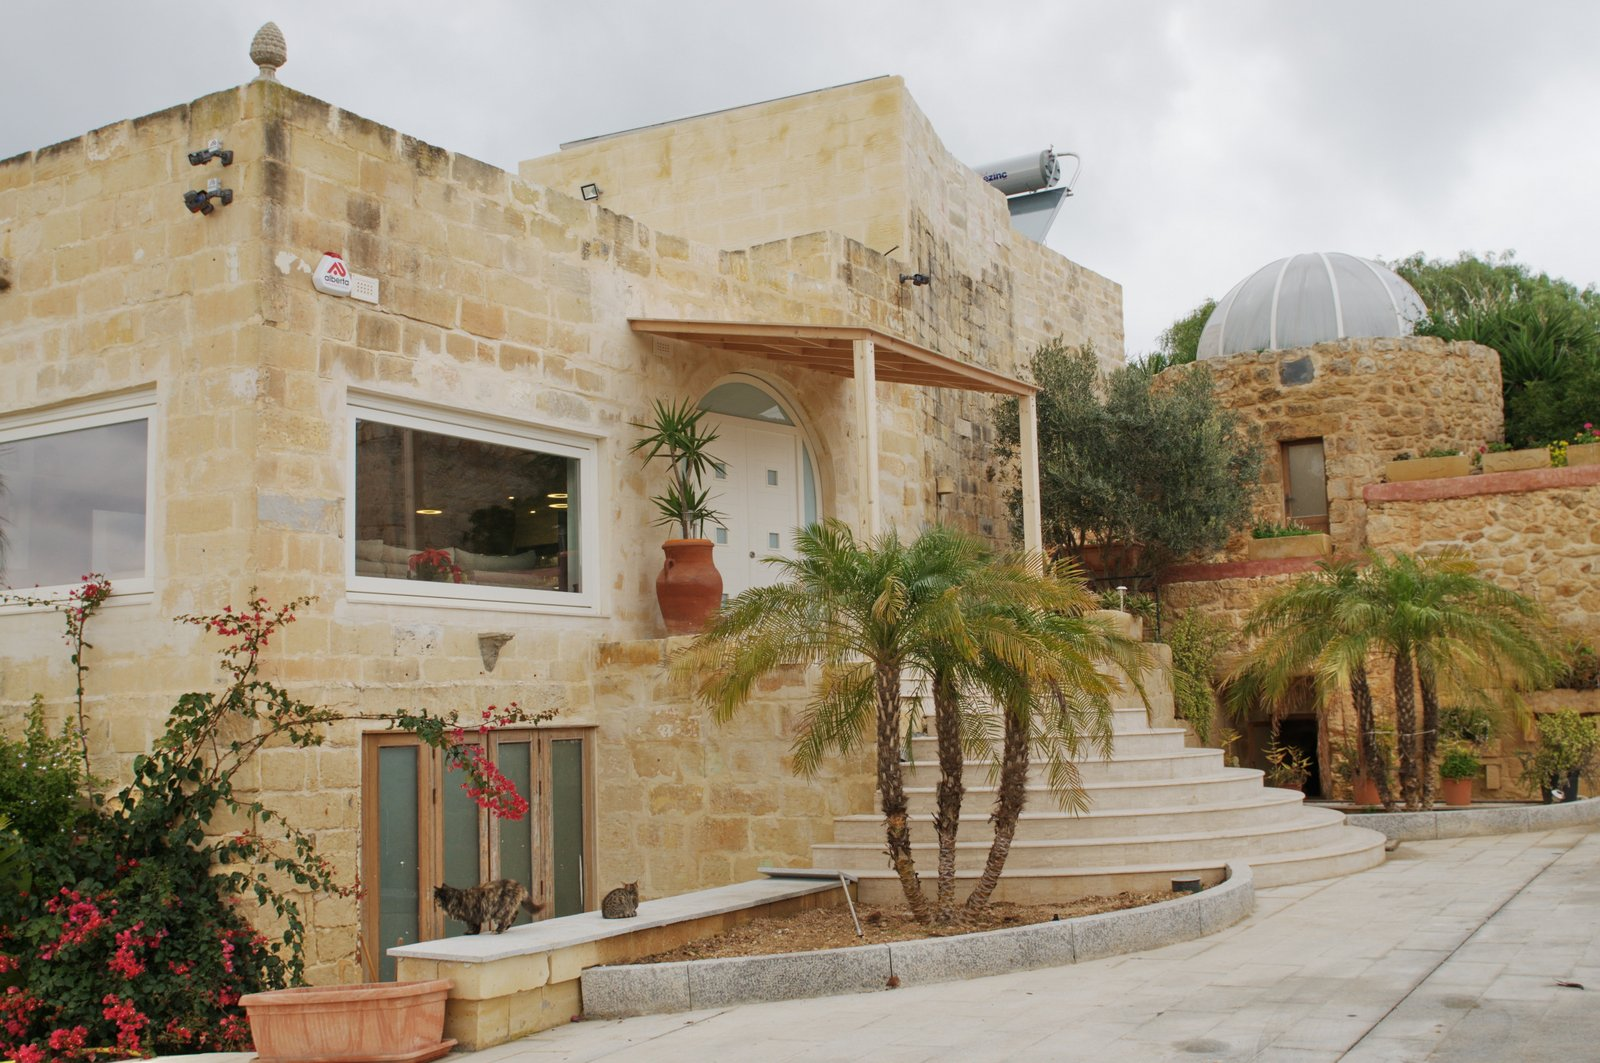 Cars For Sale Bay Area >> House of Character for Sale in Bahrija, Malta - Pierre ...